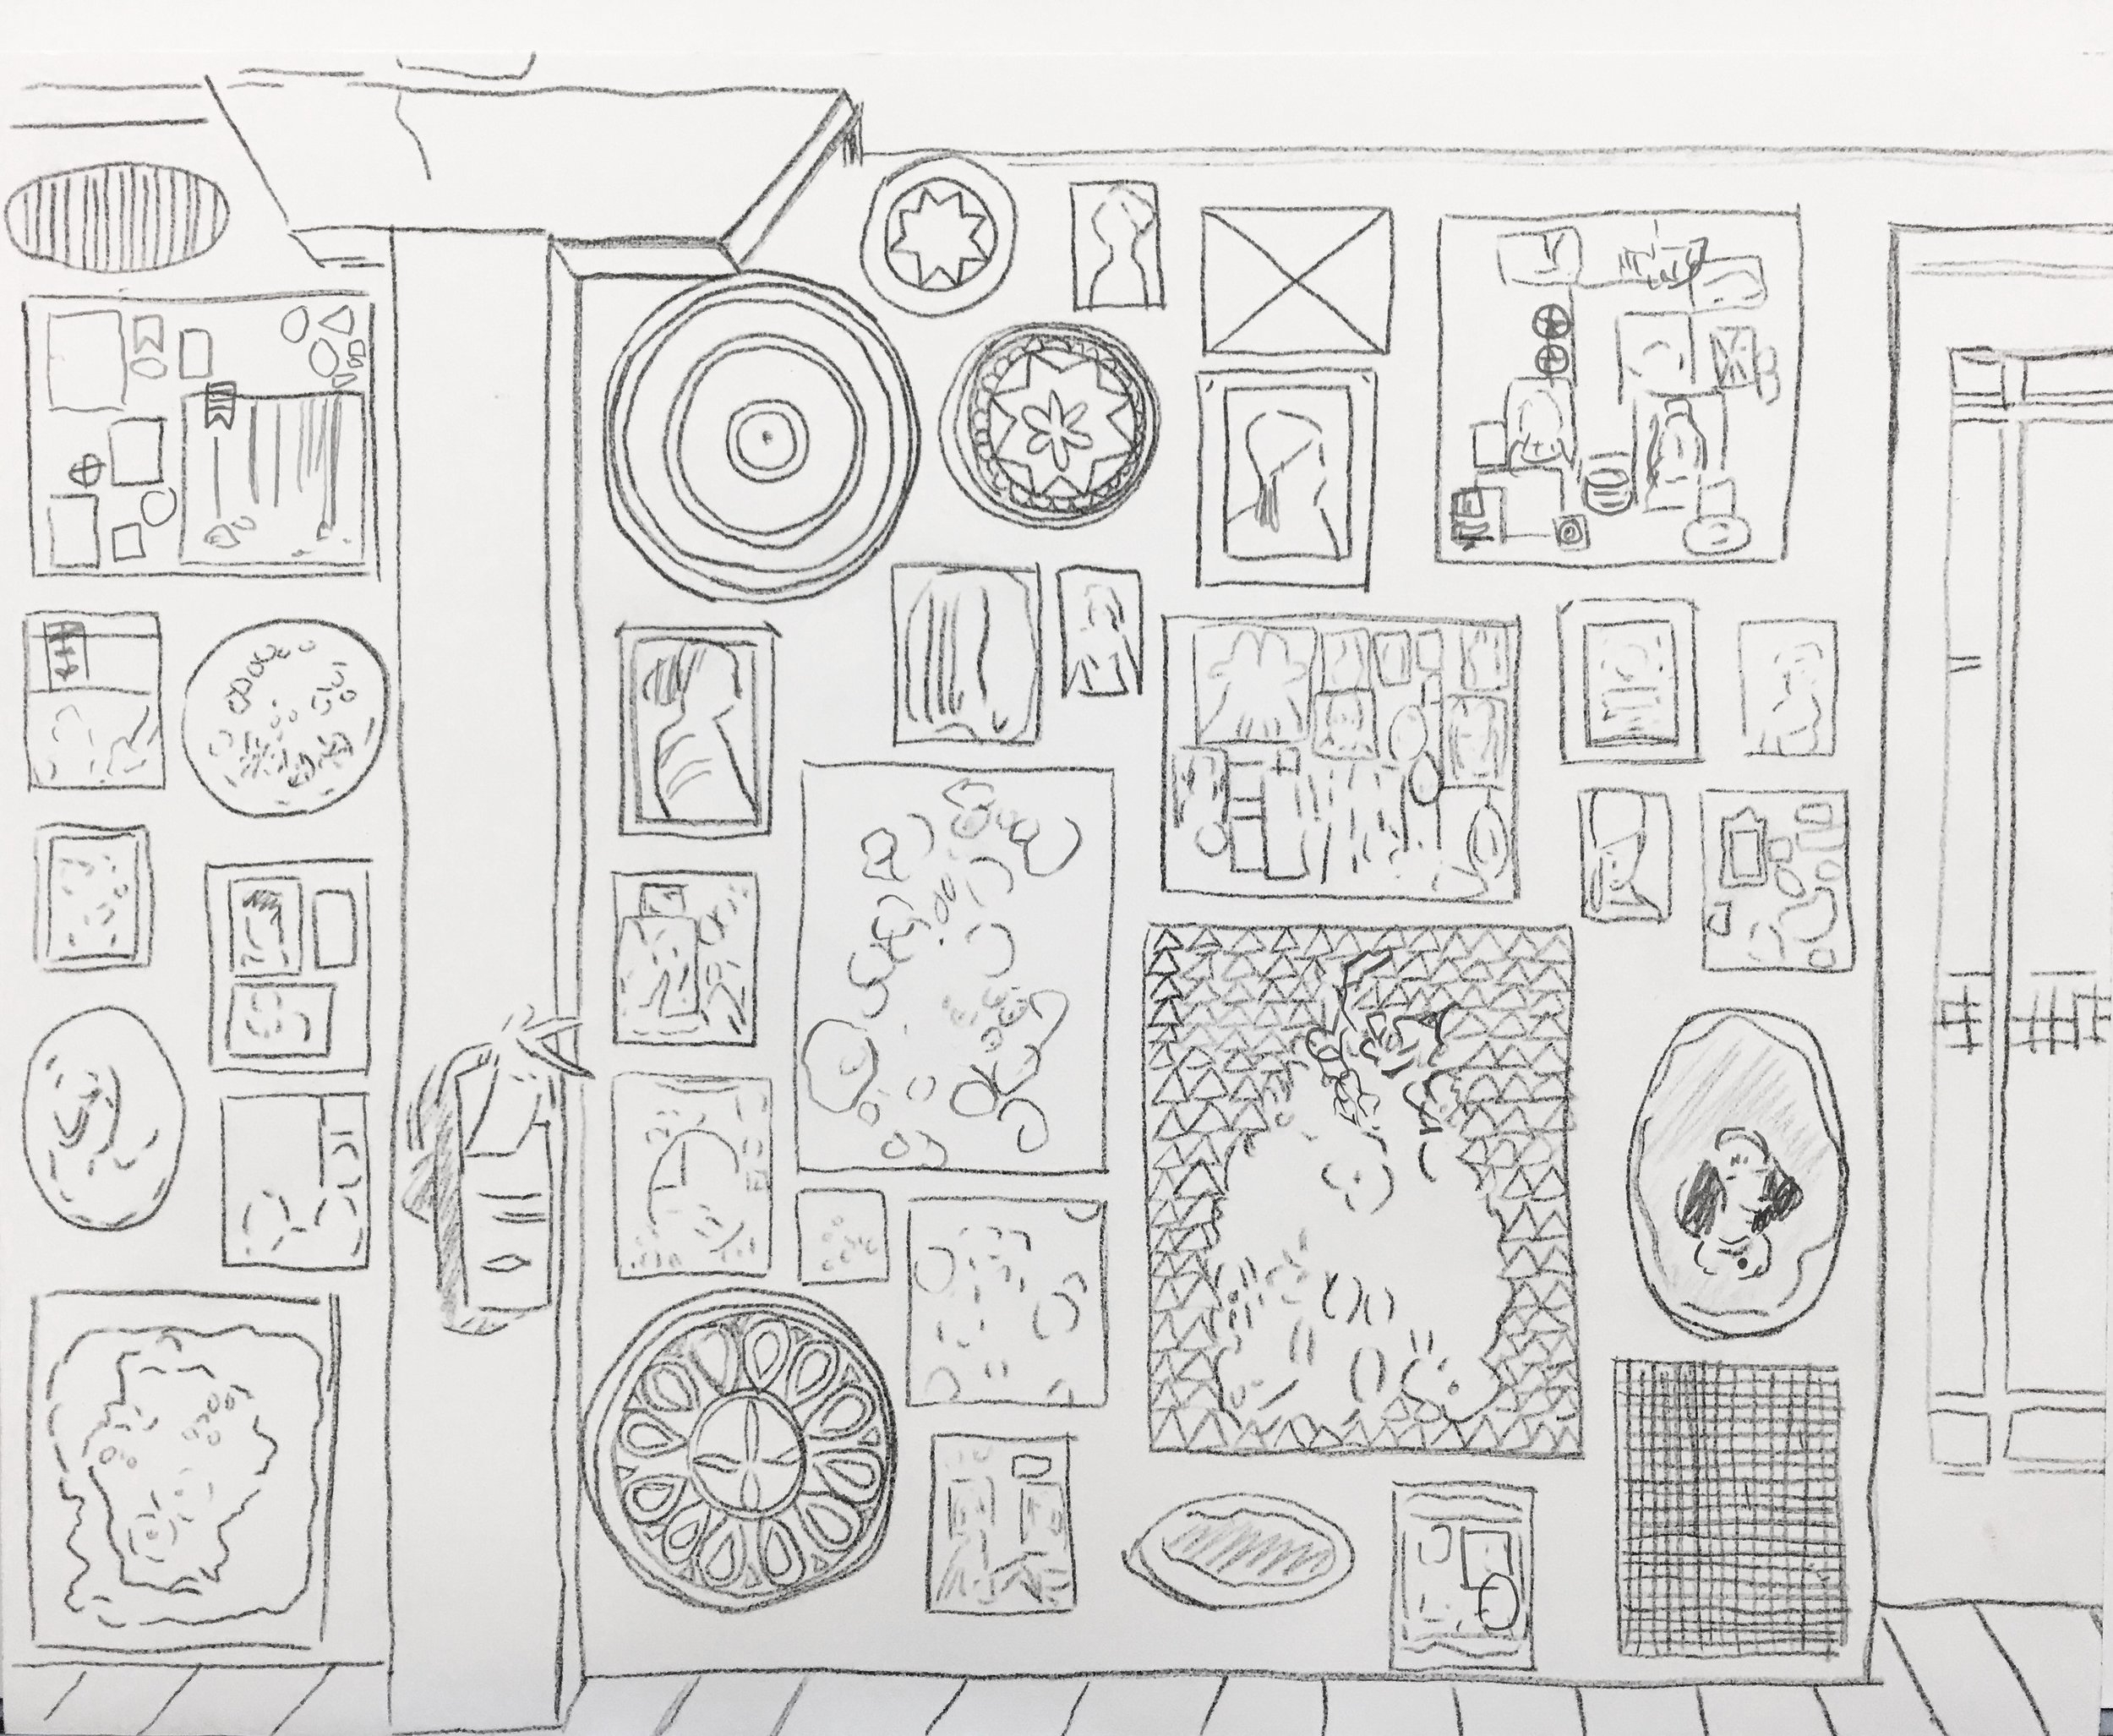 Salon, 2017, drawing in process, 8 x 10 in, pencil on paper on panel